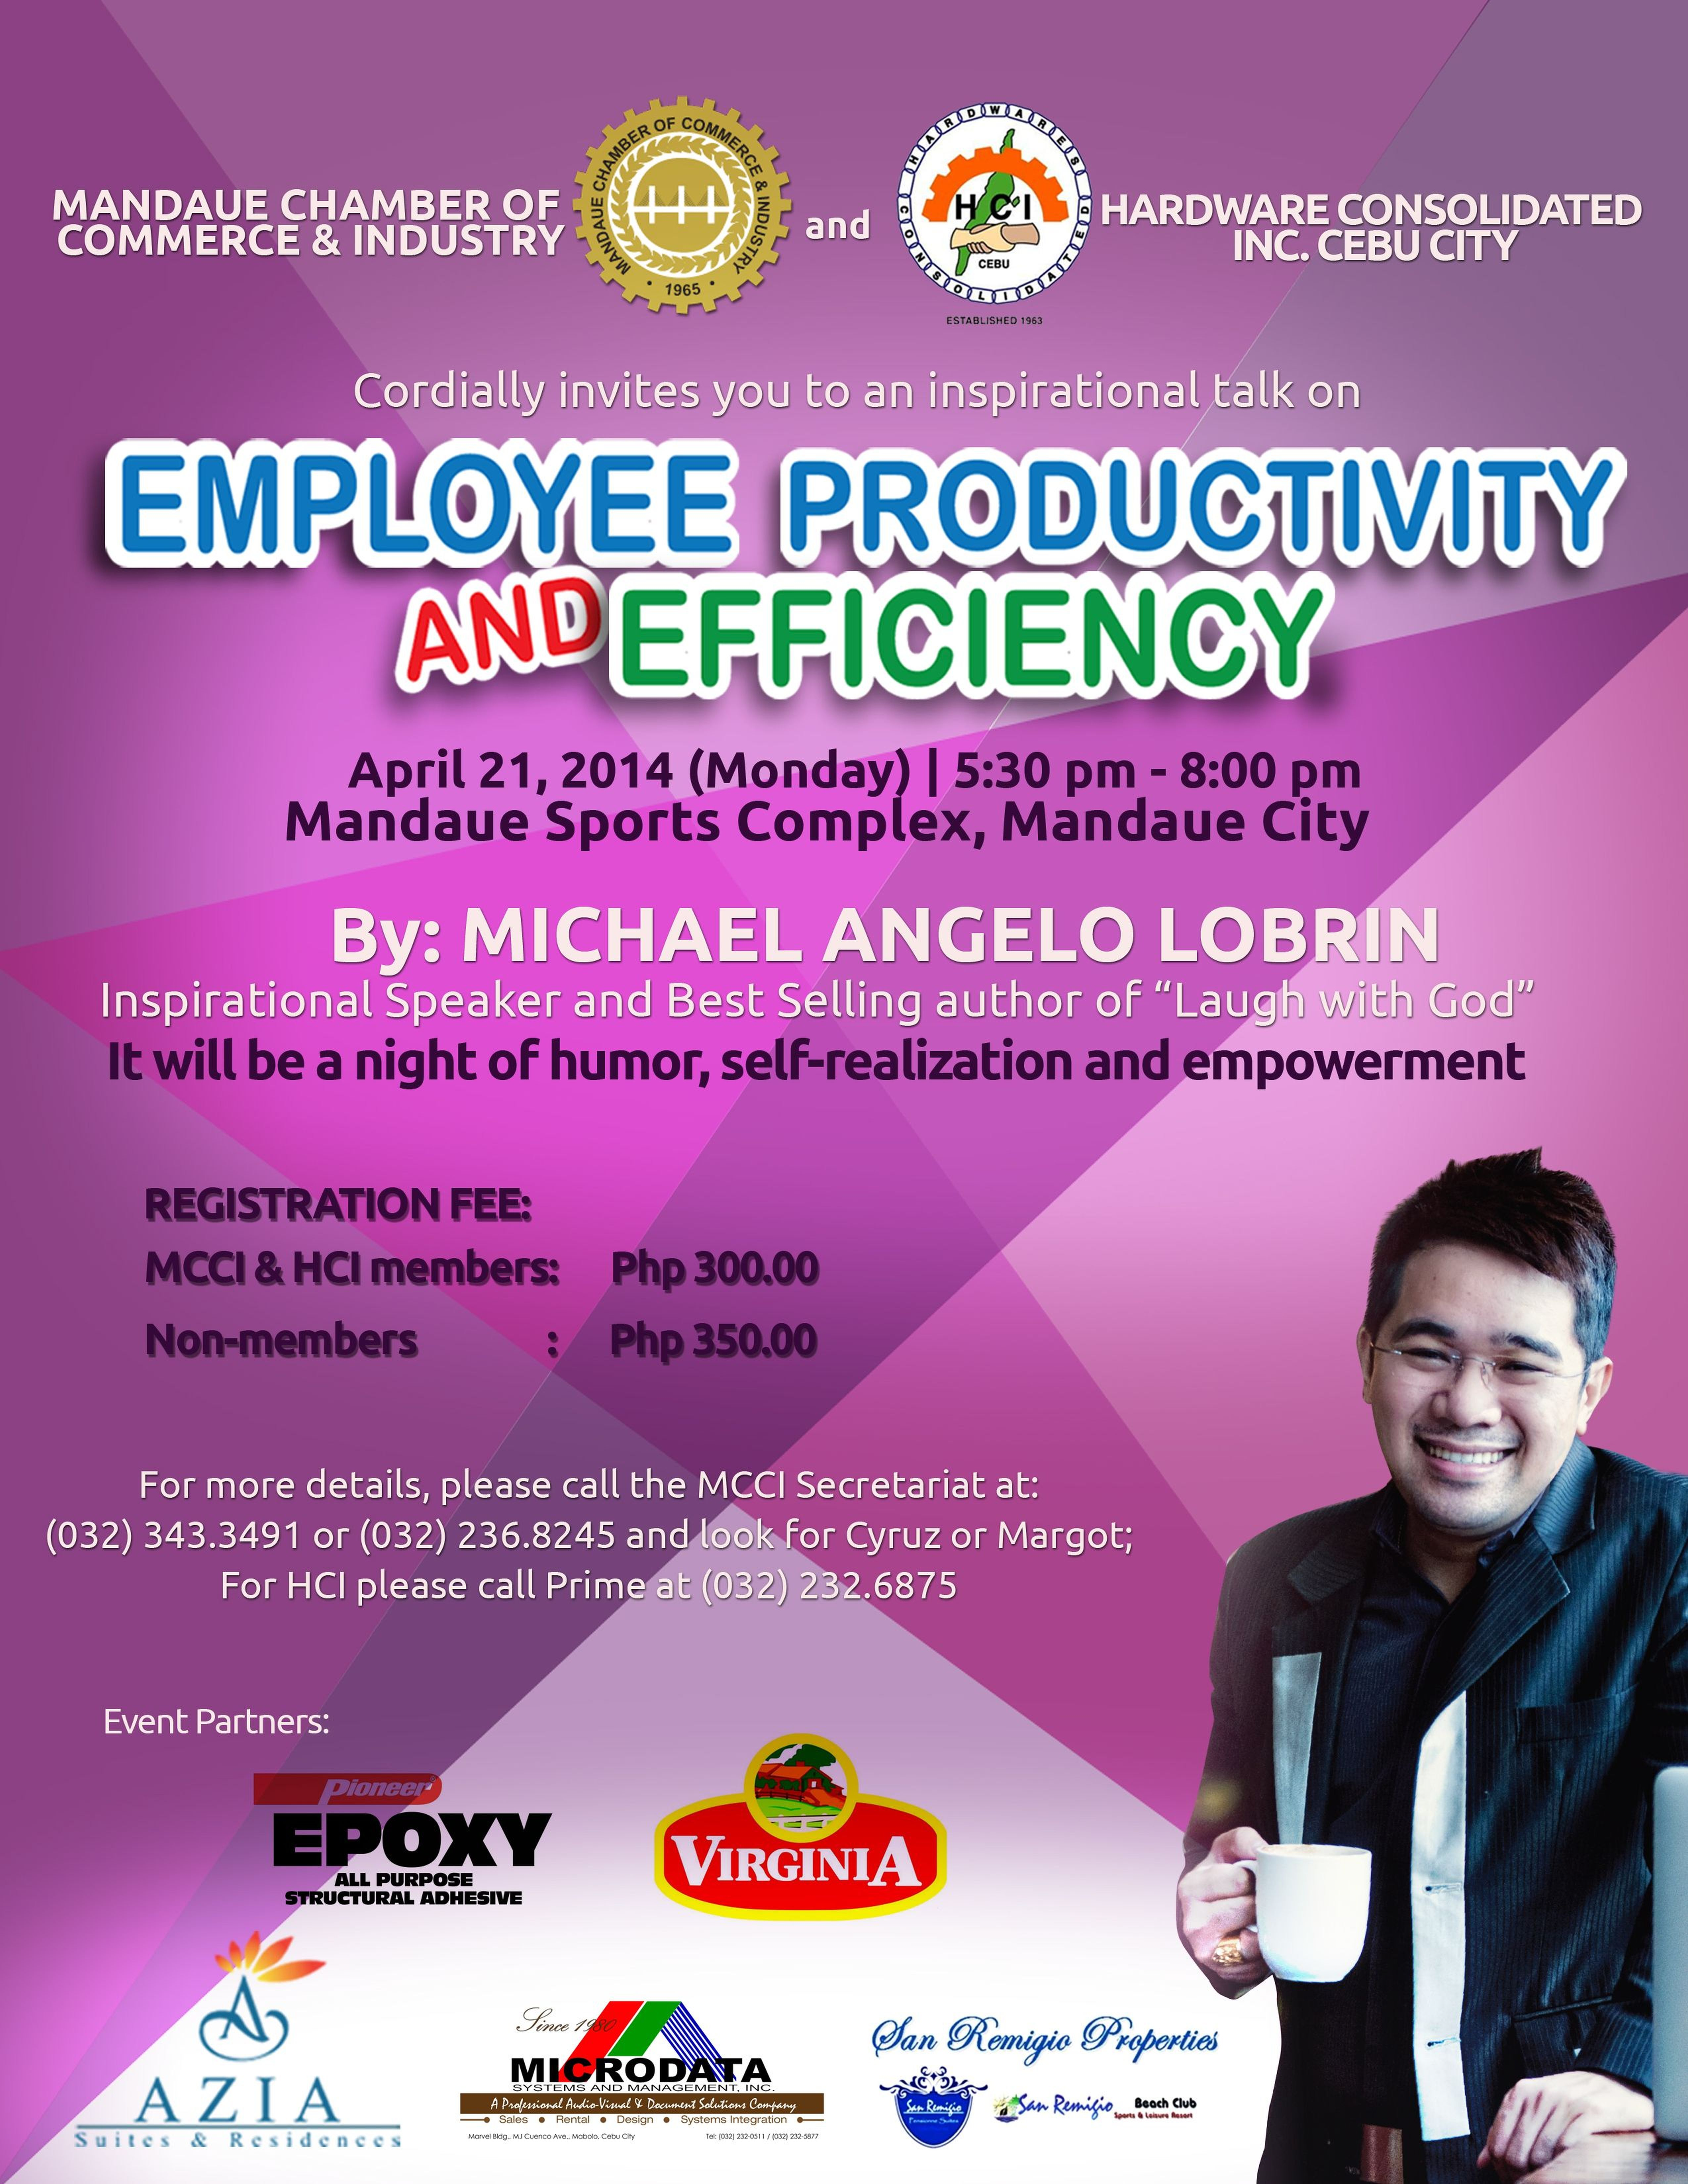 Employee Productivity and Efficiency